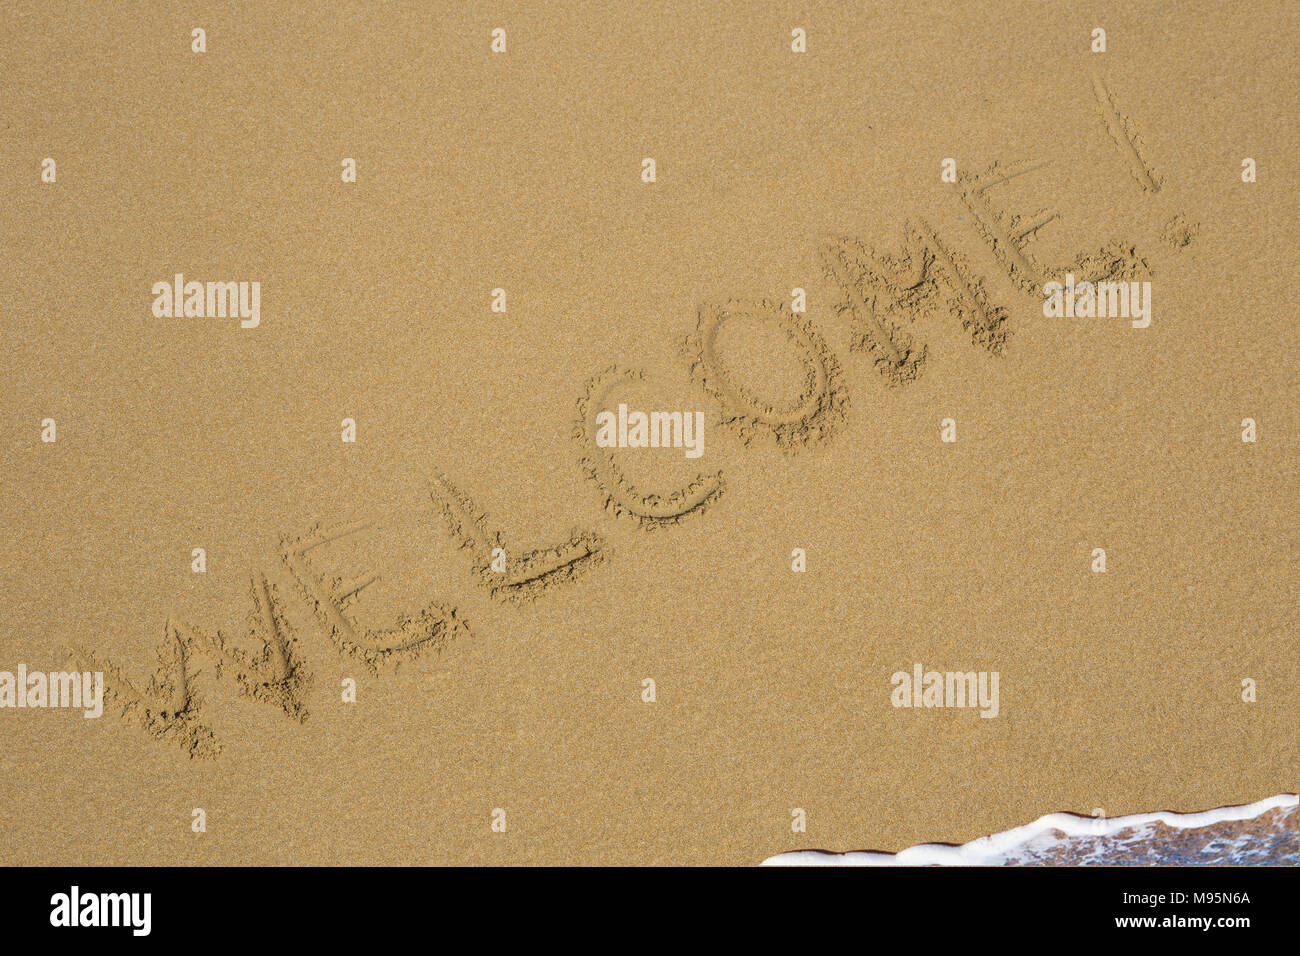 Inscription welcome on a wet sand the writing sea - Stock Image